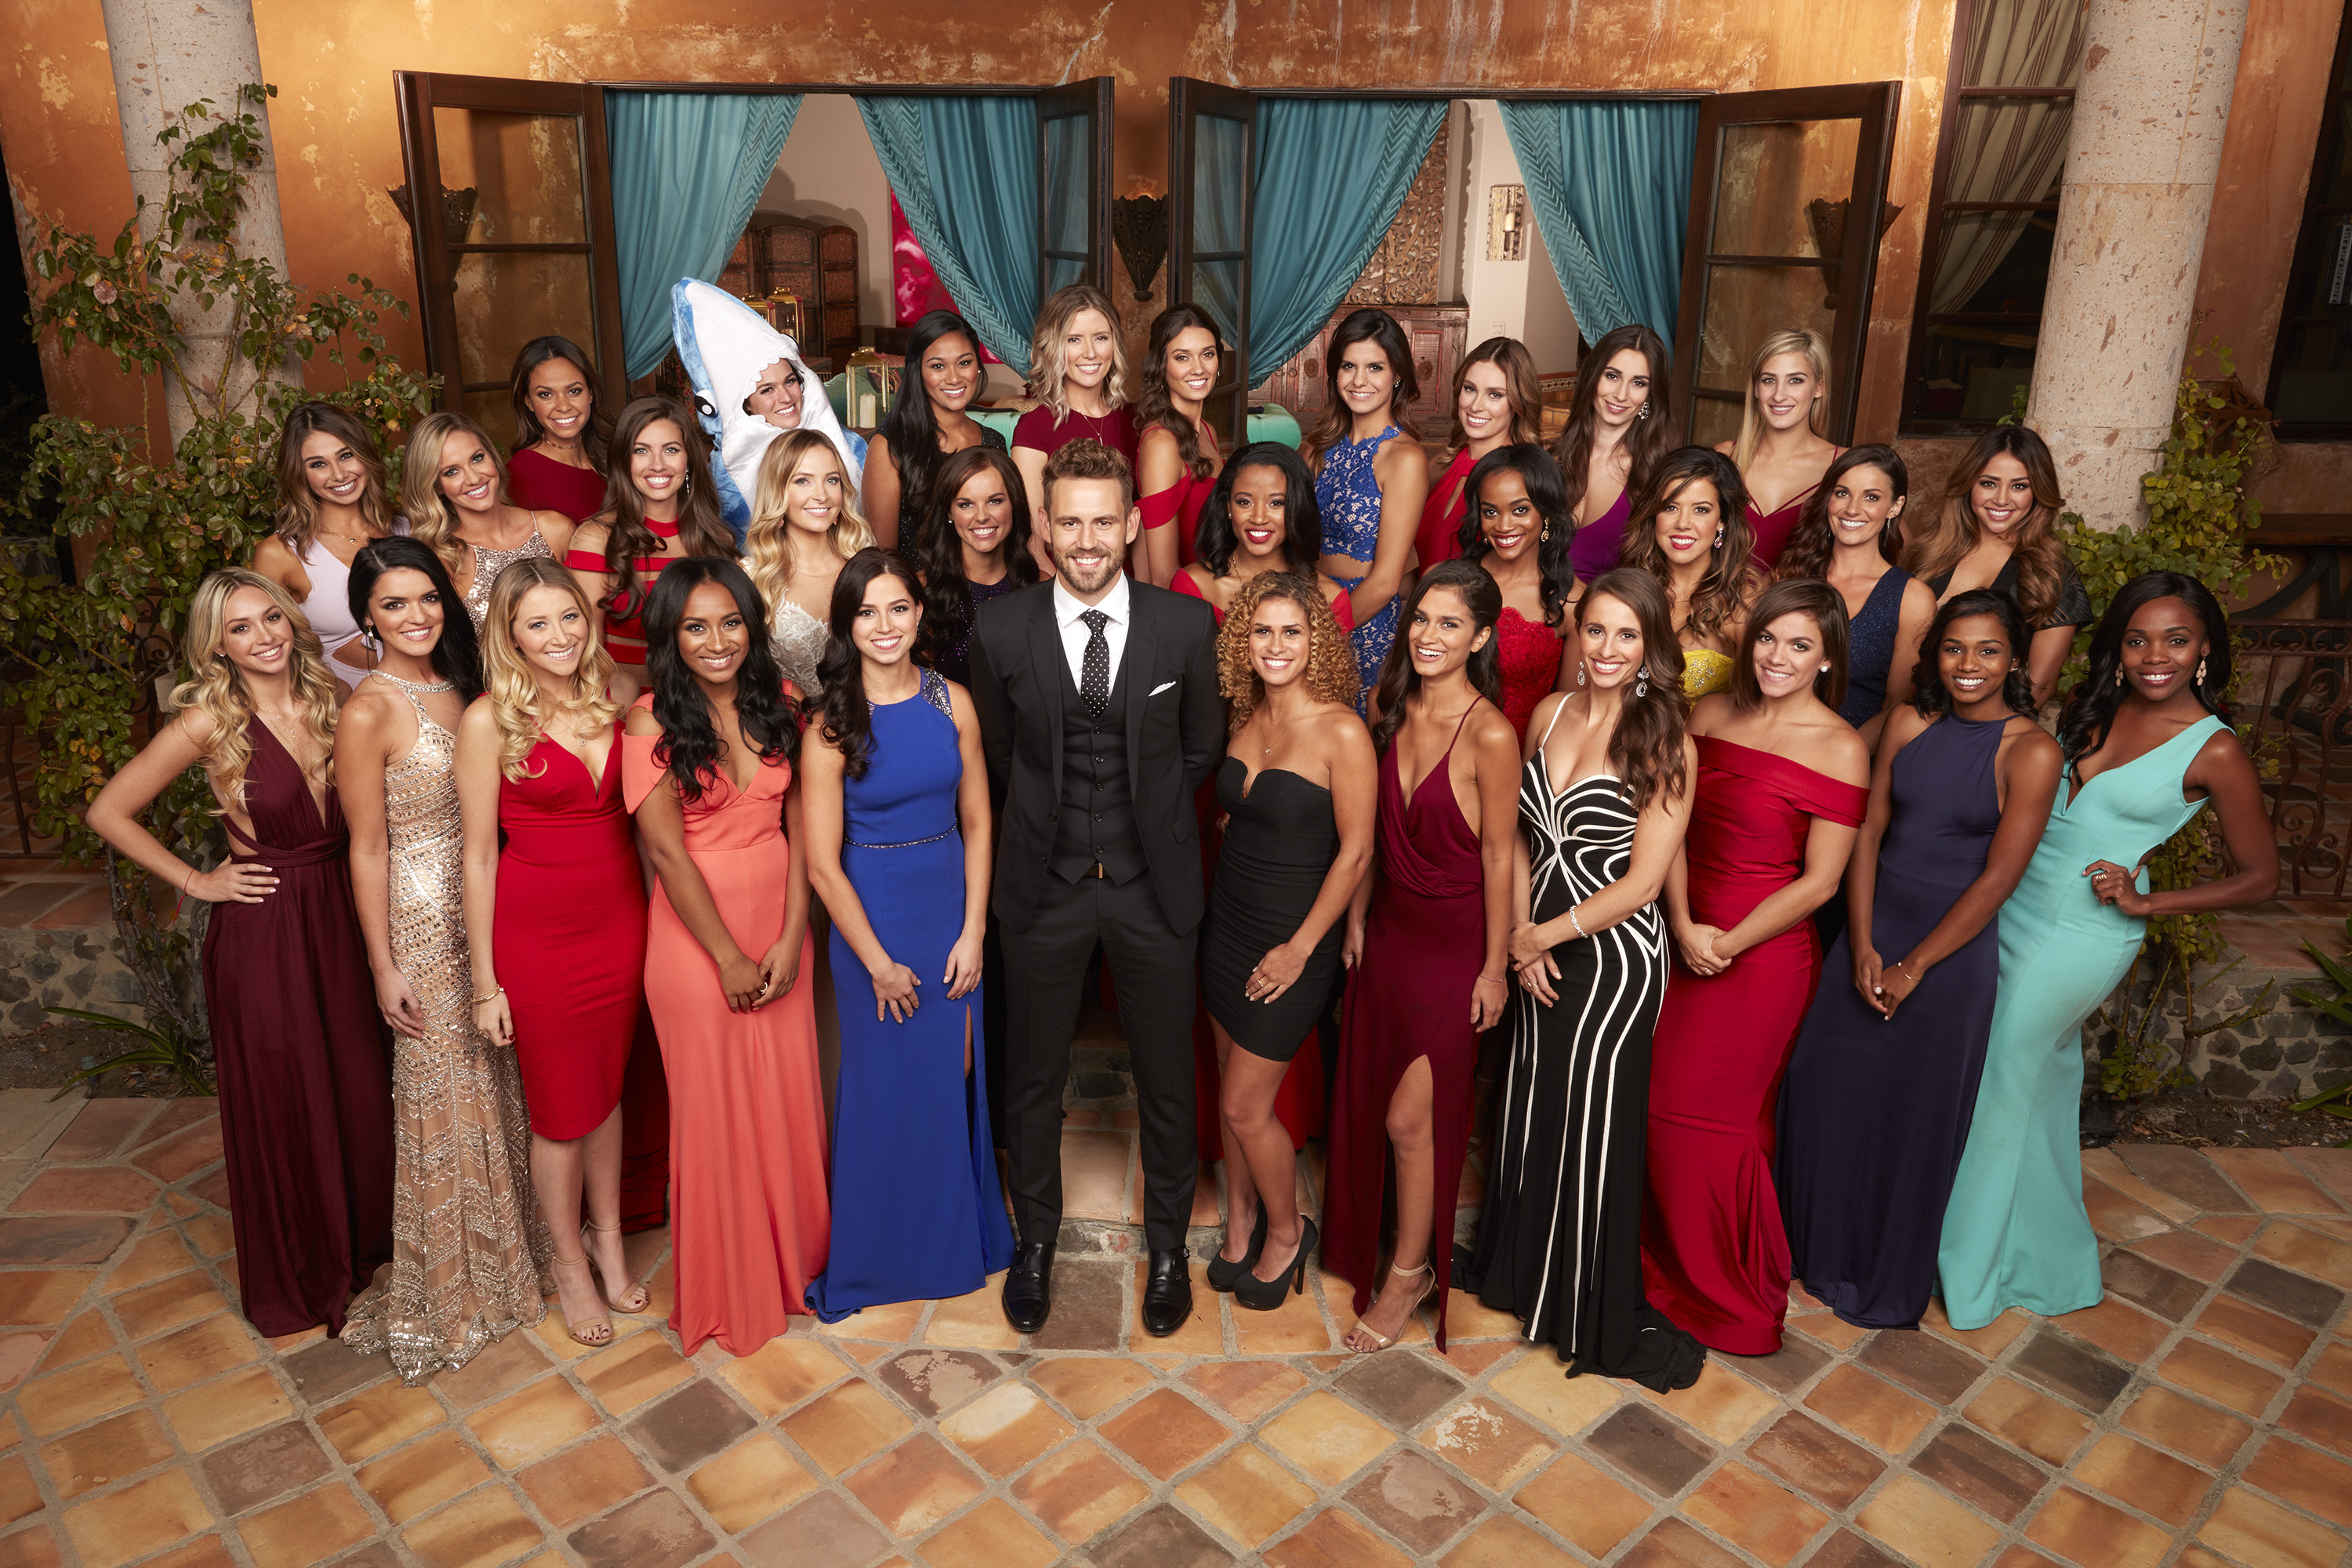 Entzuckend Fourth Timeu0027s The Charm For The Next Bachelor, Handsome Software Salesman  Nick Viall, And Now We Finally Get To See The 30 Ladies Who Will Make Up  The ...